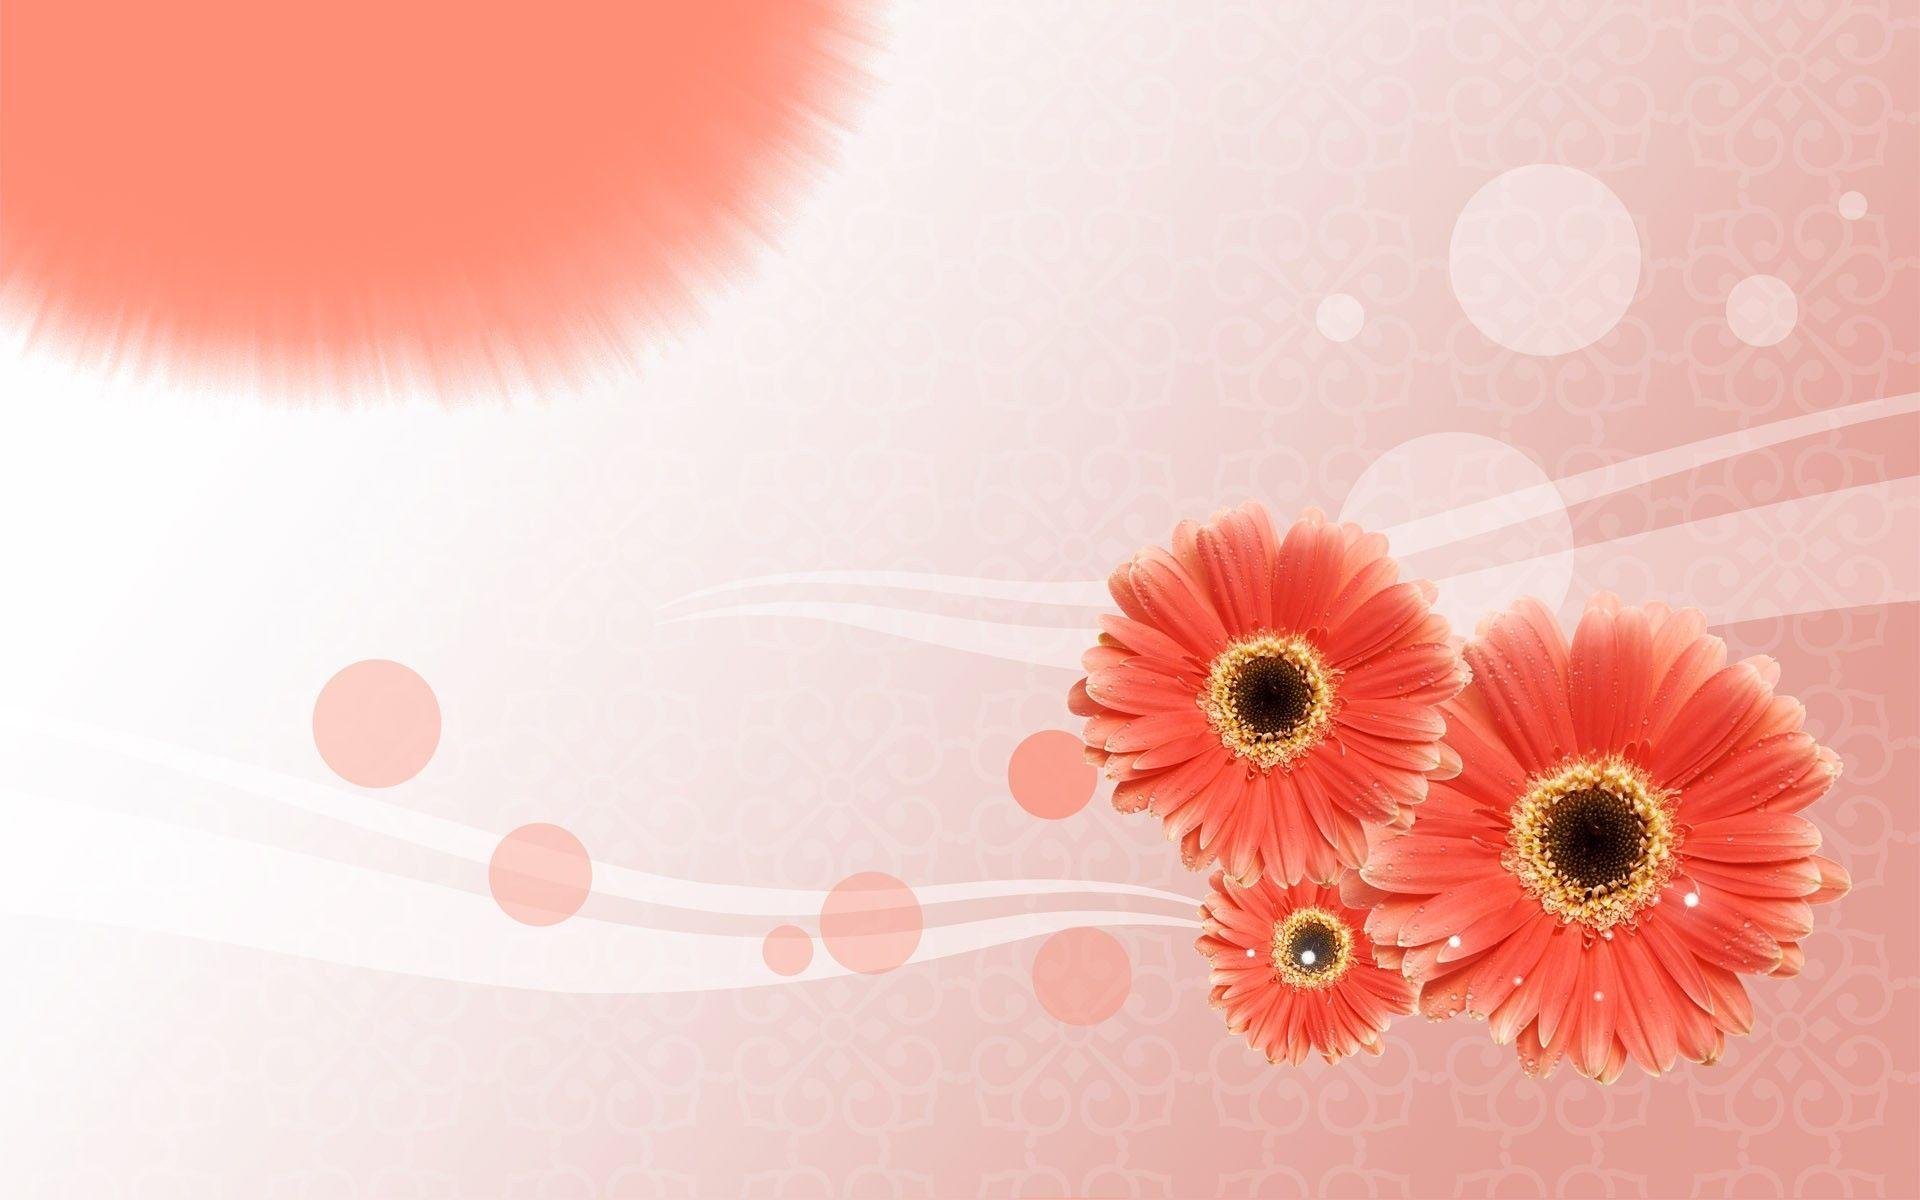 Flowers Backgrounds Wallpaper Cave